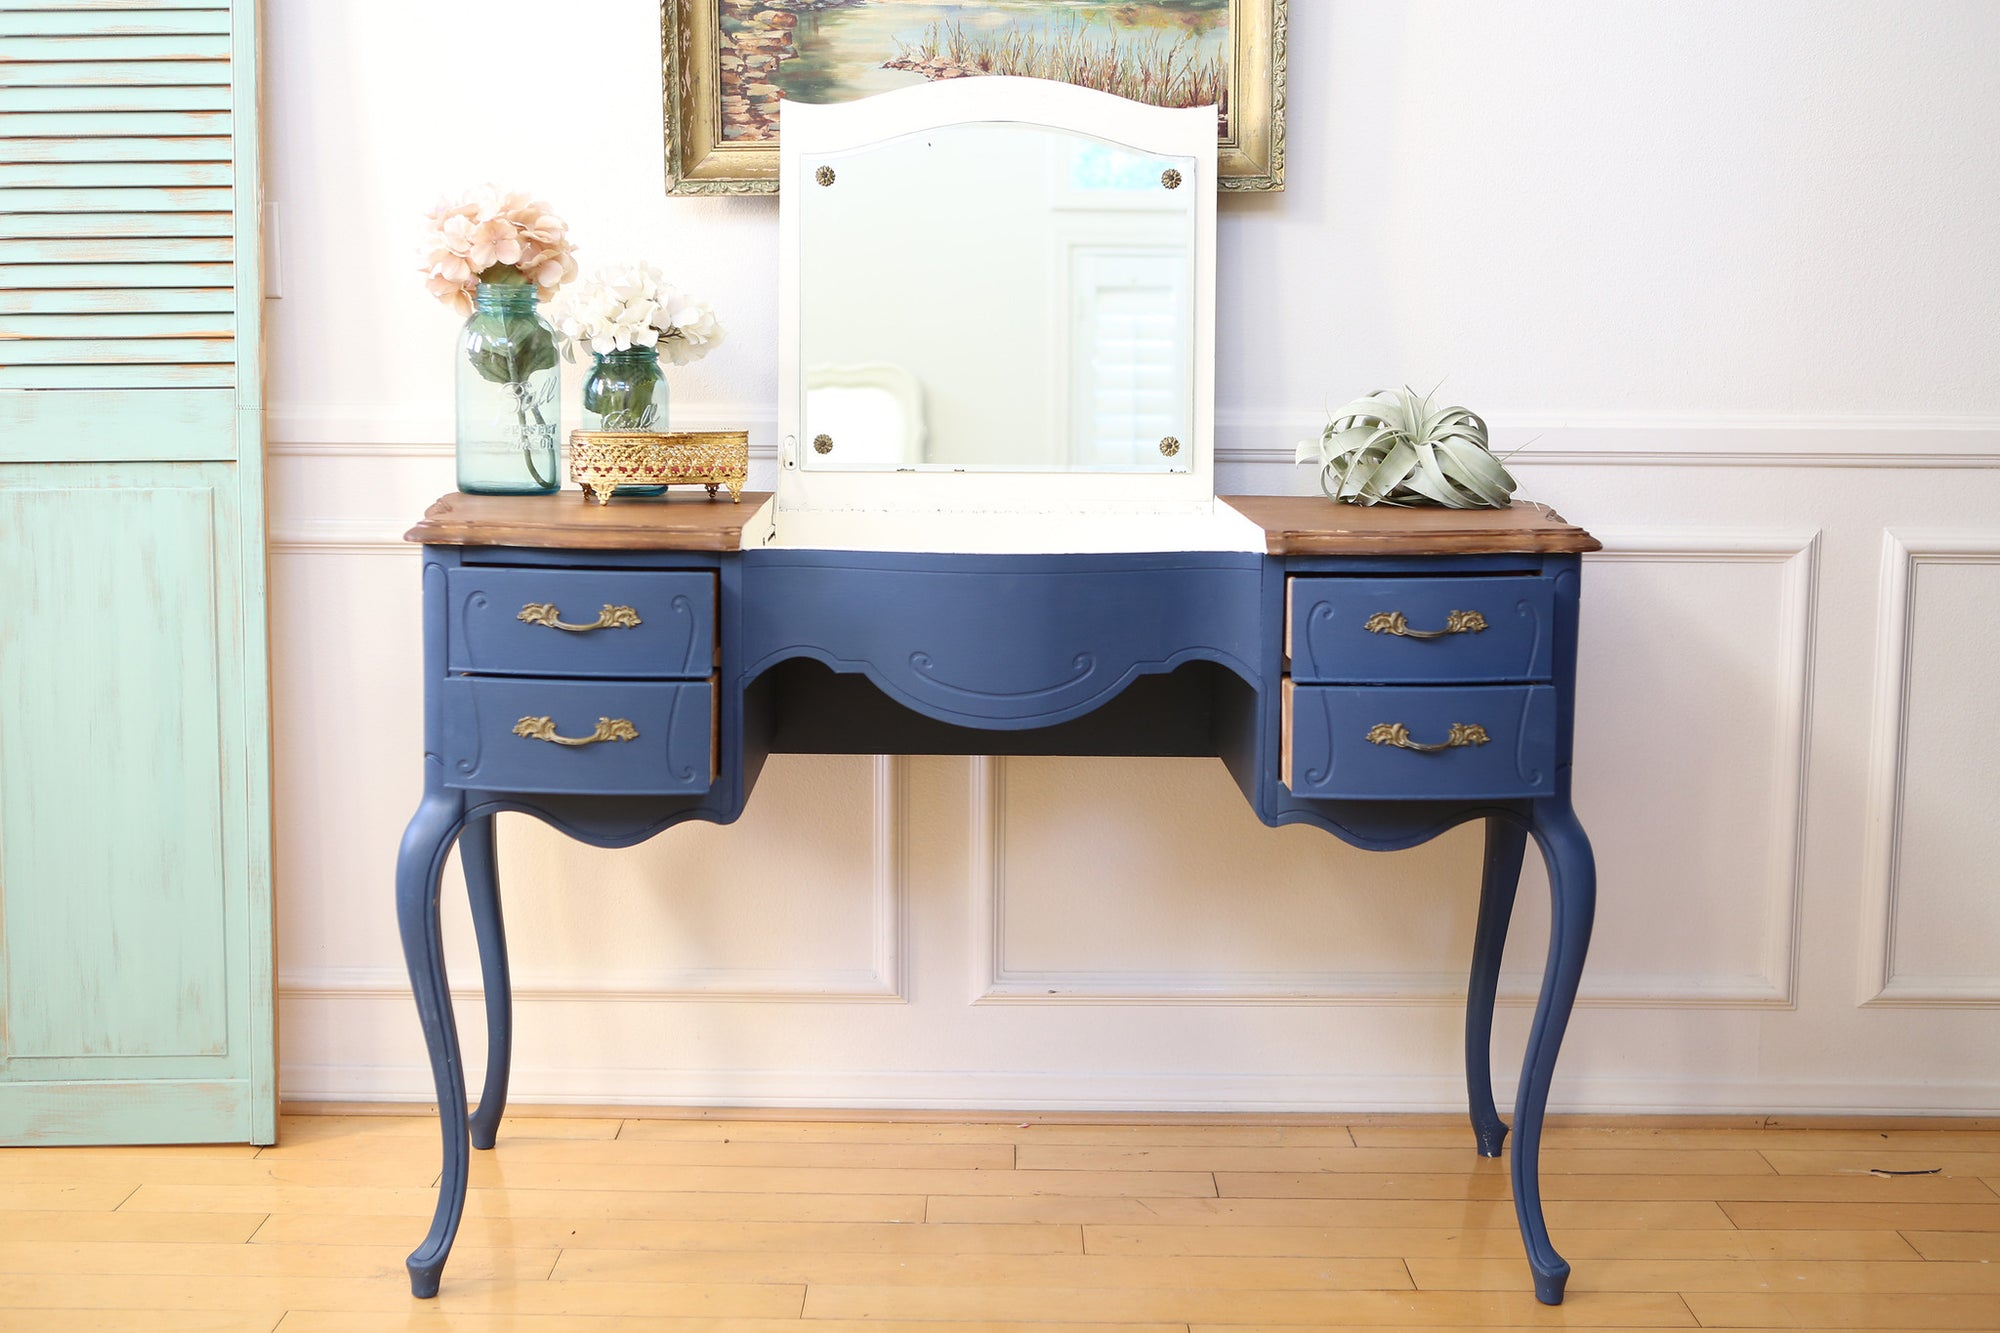 Vintage French Shabby Chic Vanity Desk Console Table With Flip Up